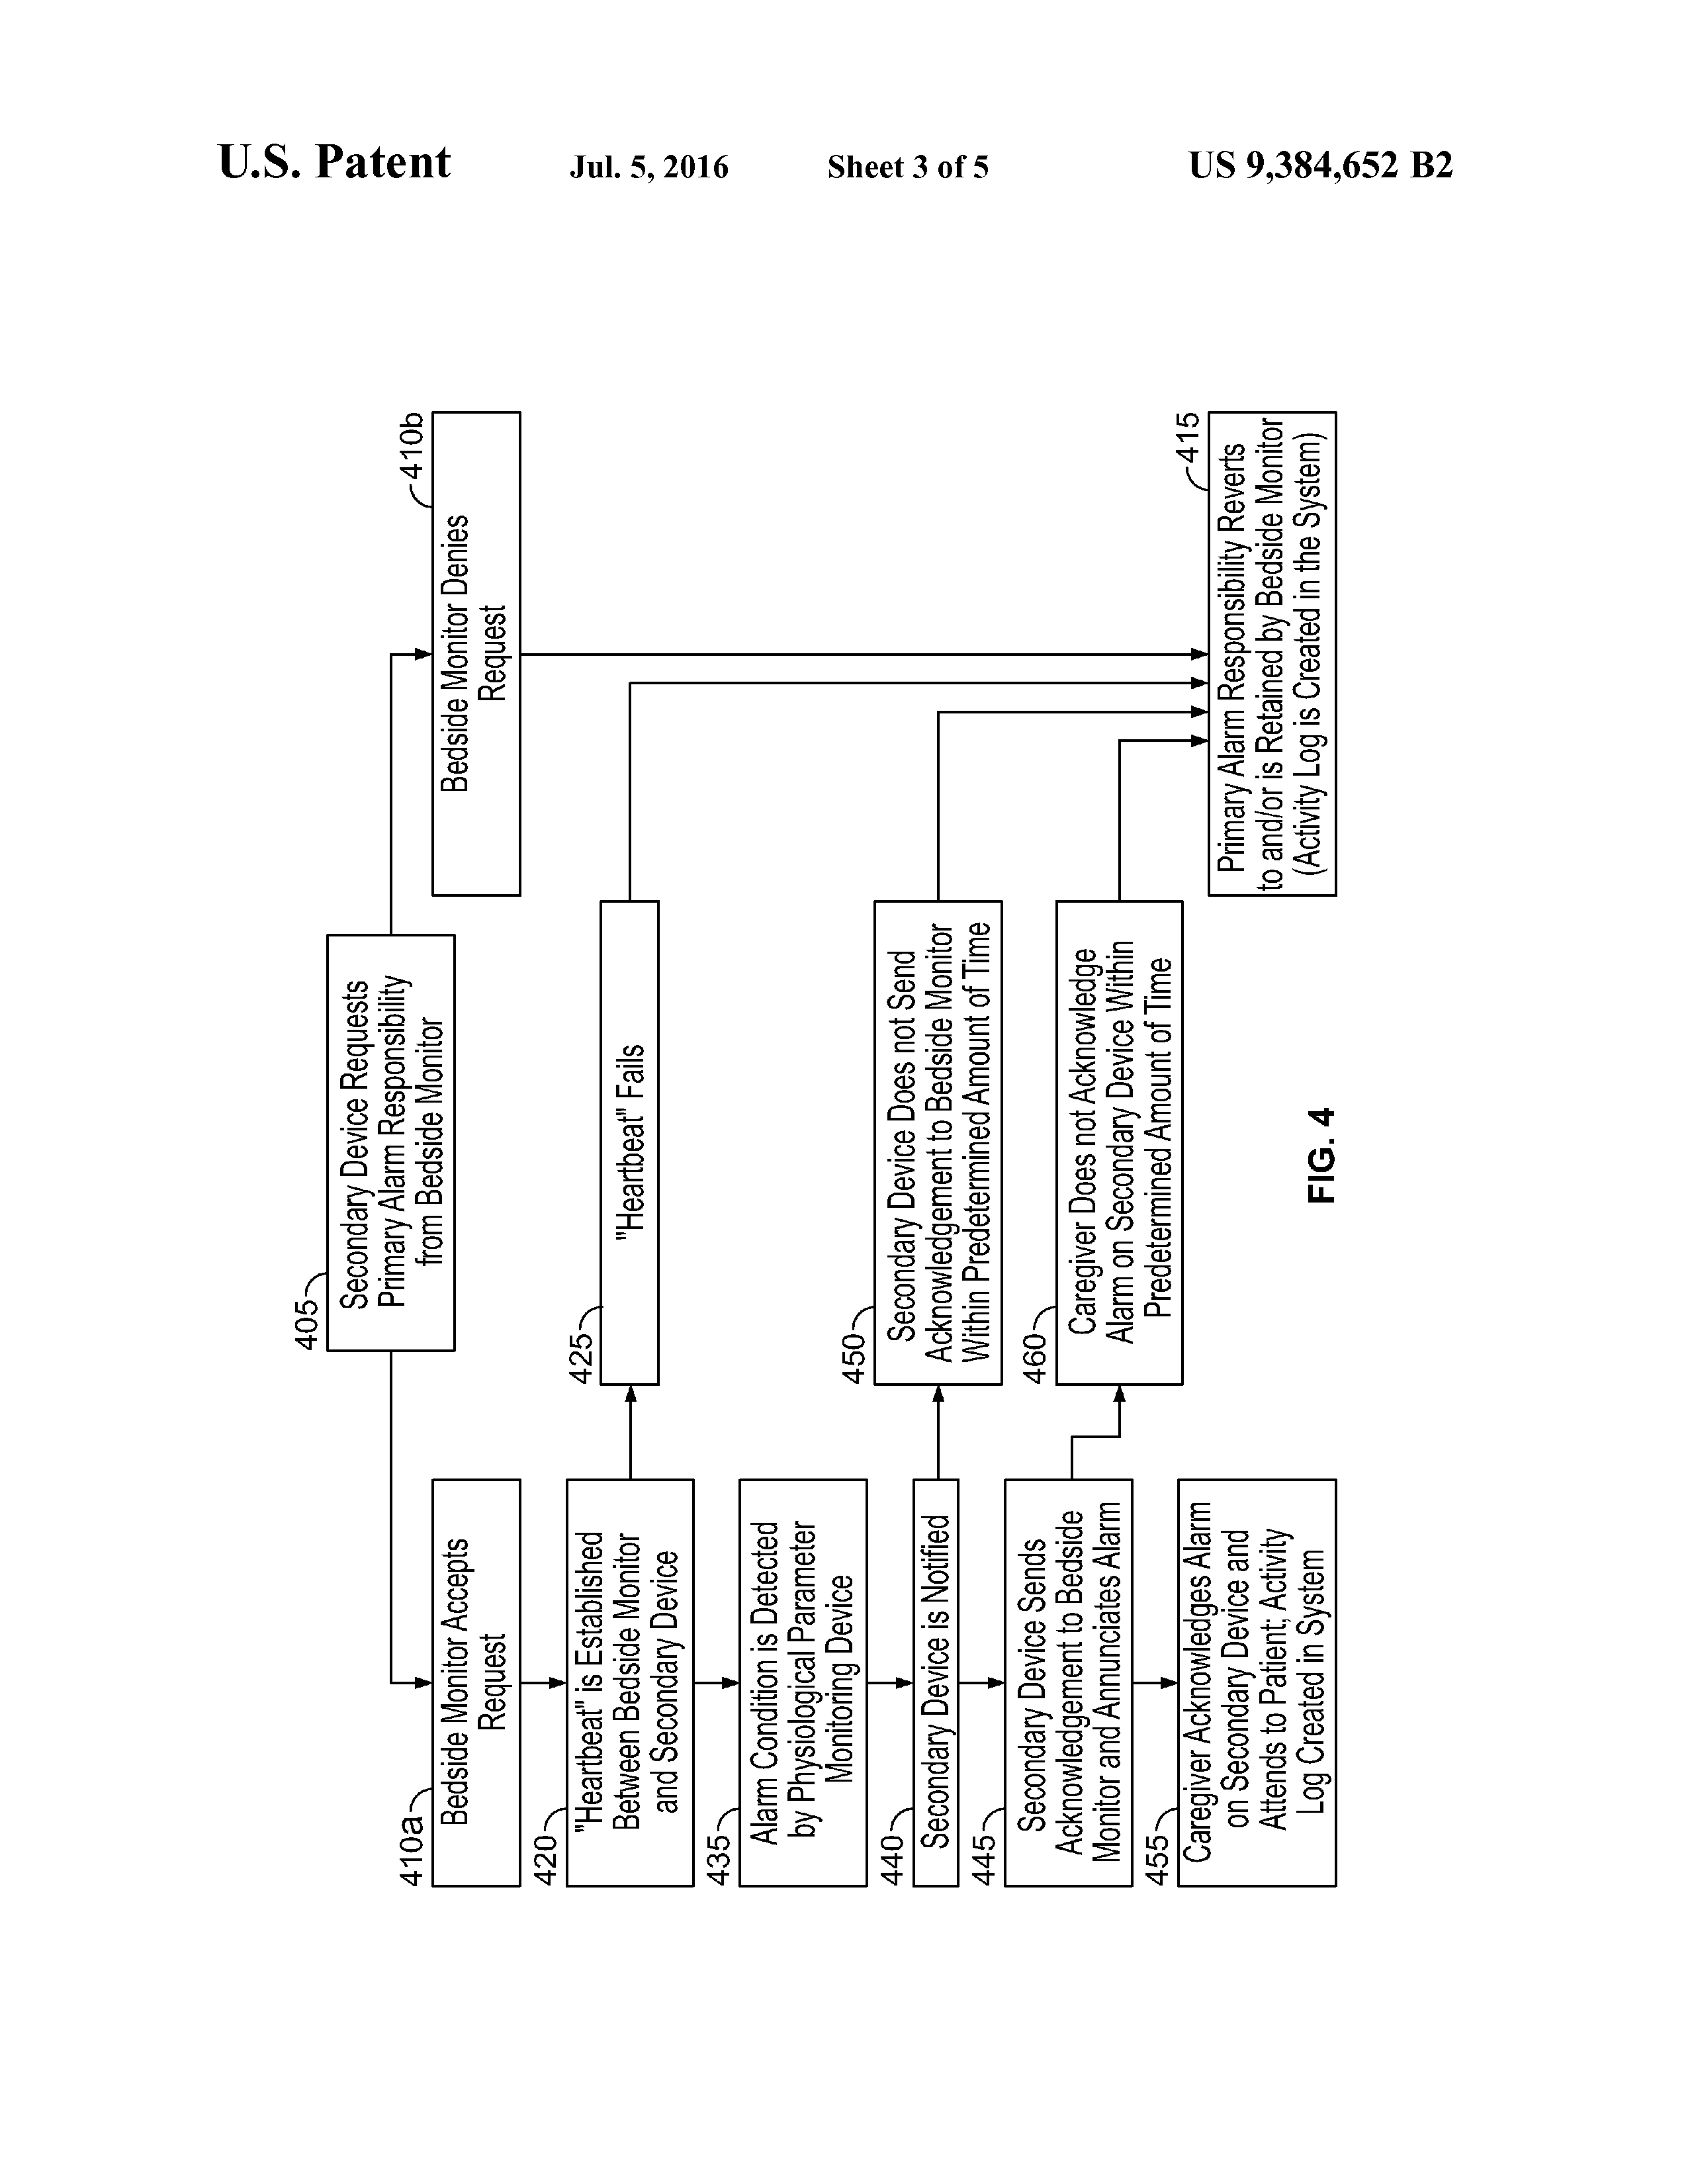 Us 9384652 B2 System And Method For Transfer Of Primary Alarm Heartbeatmonitorcircuitjpg Page 8 20